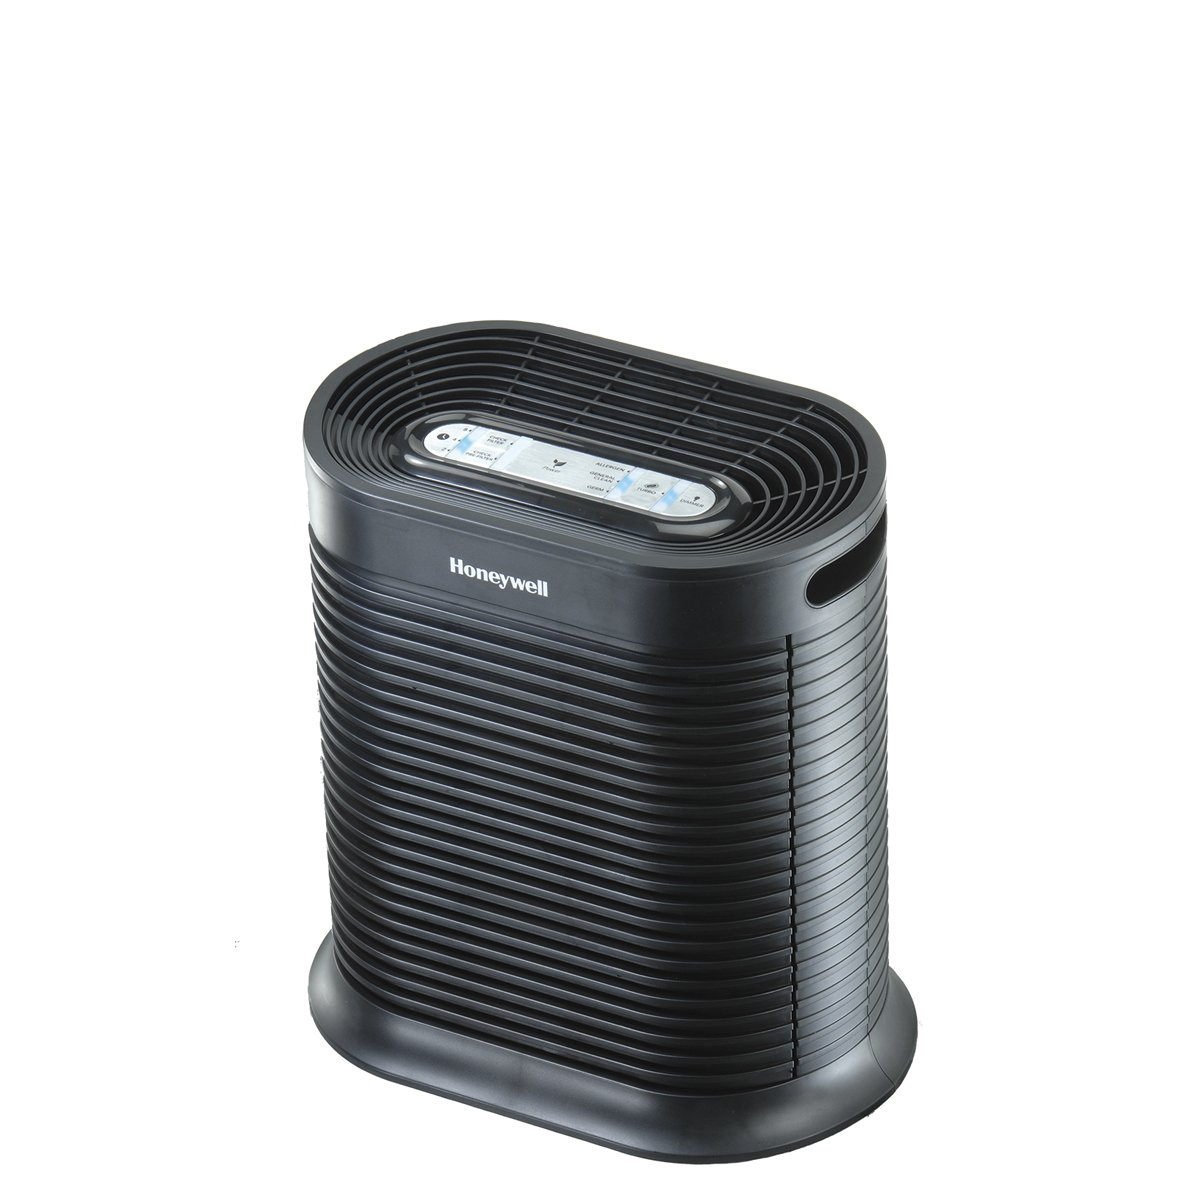 Honeywell HPA100 True HEPA Allergen Remover 155 sq. ft. by Honeywell